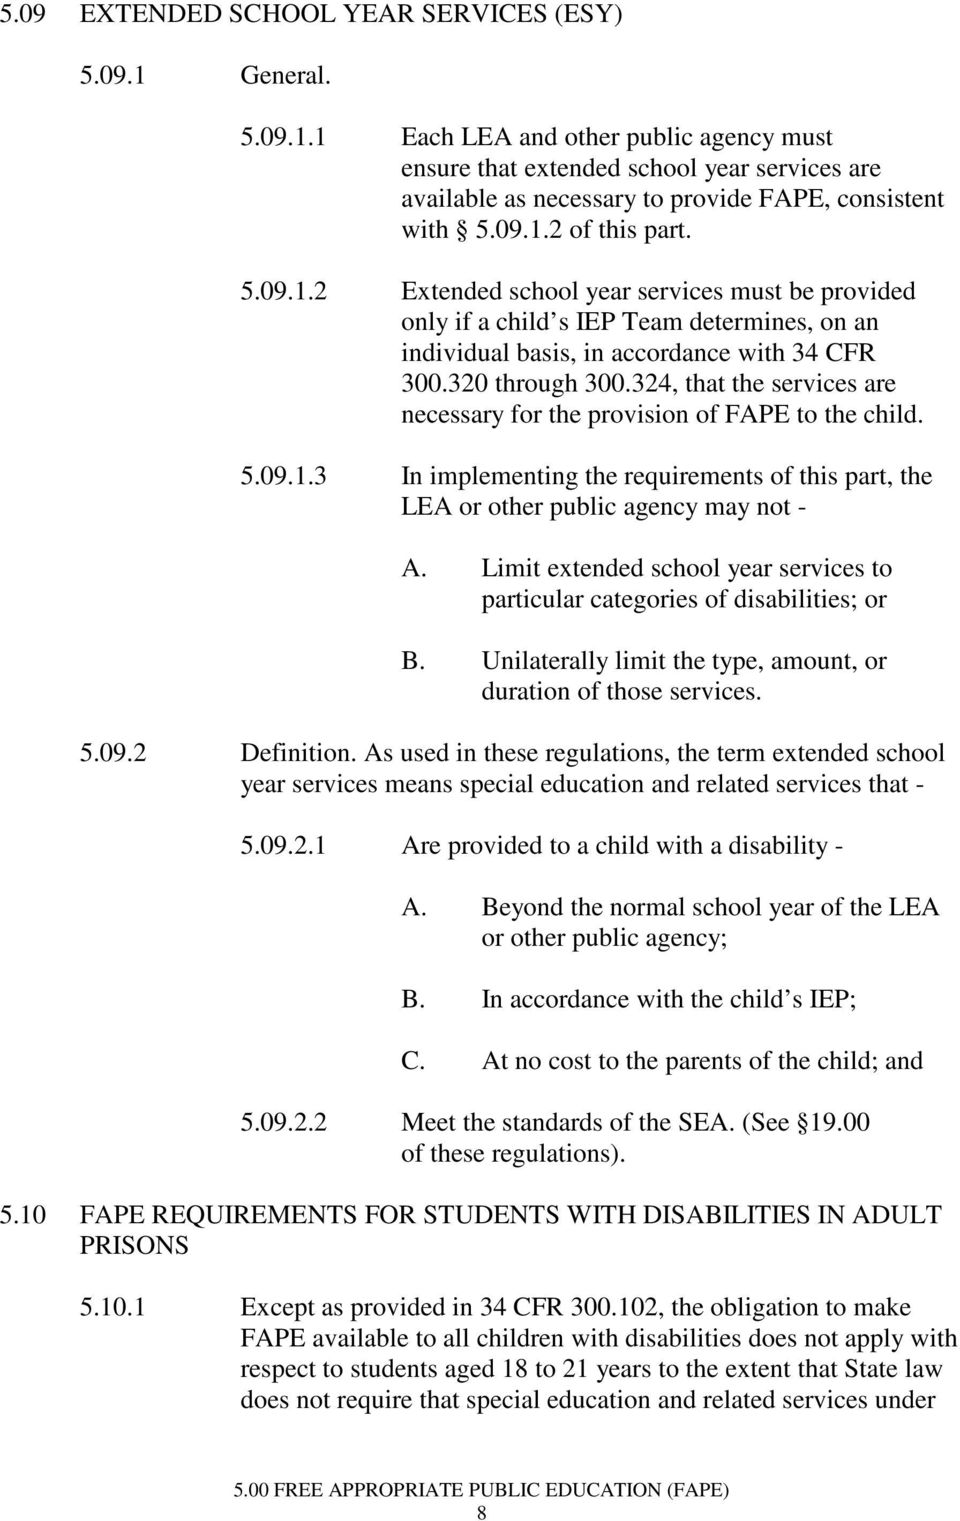 324, that the services are necessary for the provision of FAPE to the child. 5.09.1.3 In implementing the requirements of this part, the LEA or other public agency may not - A.